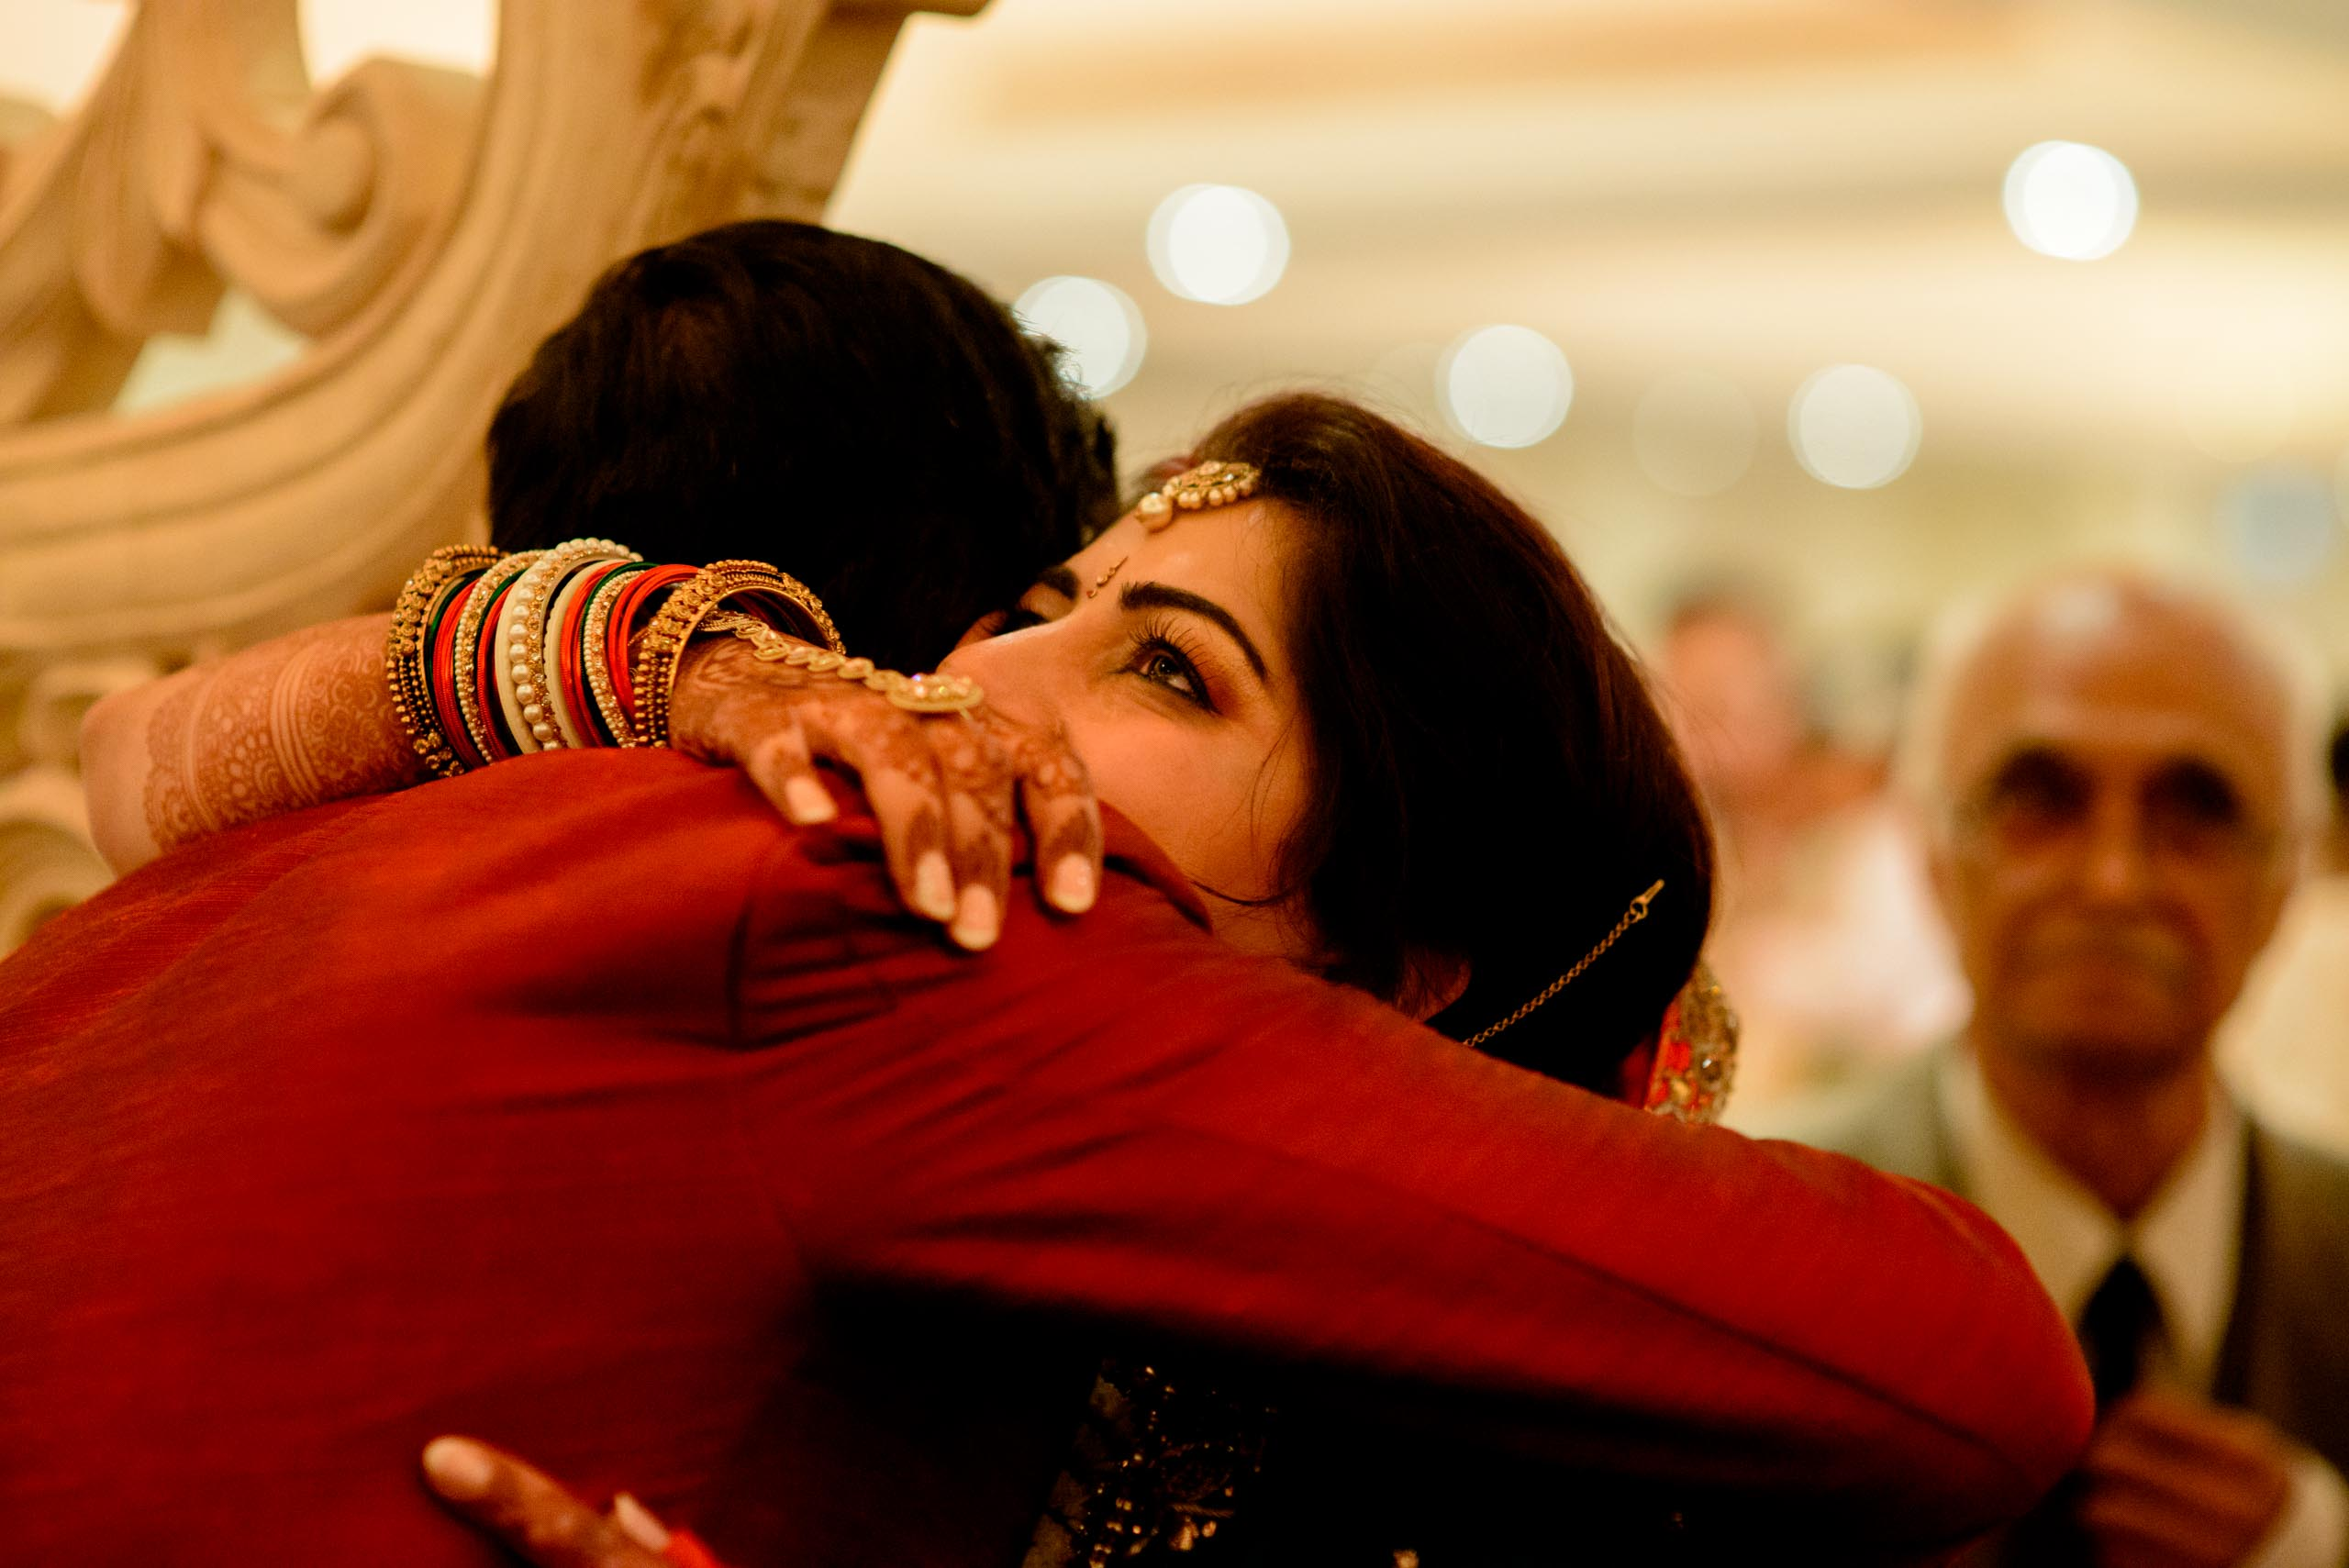 Amit&Amee-preview-edenmoments-74